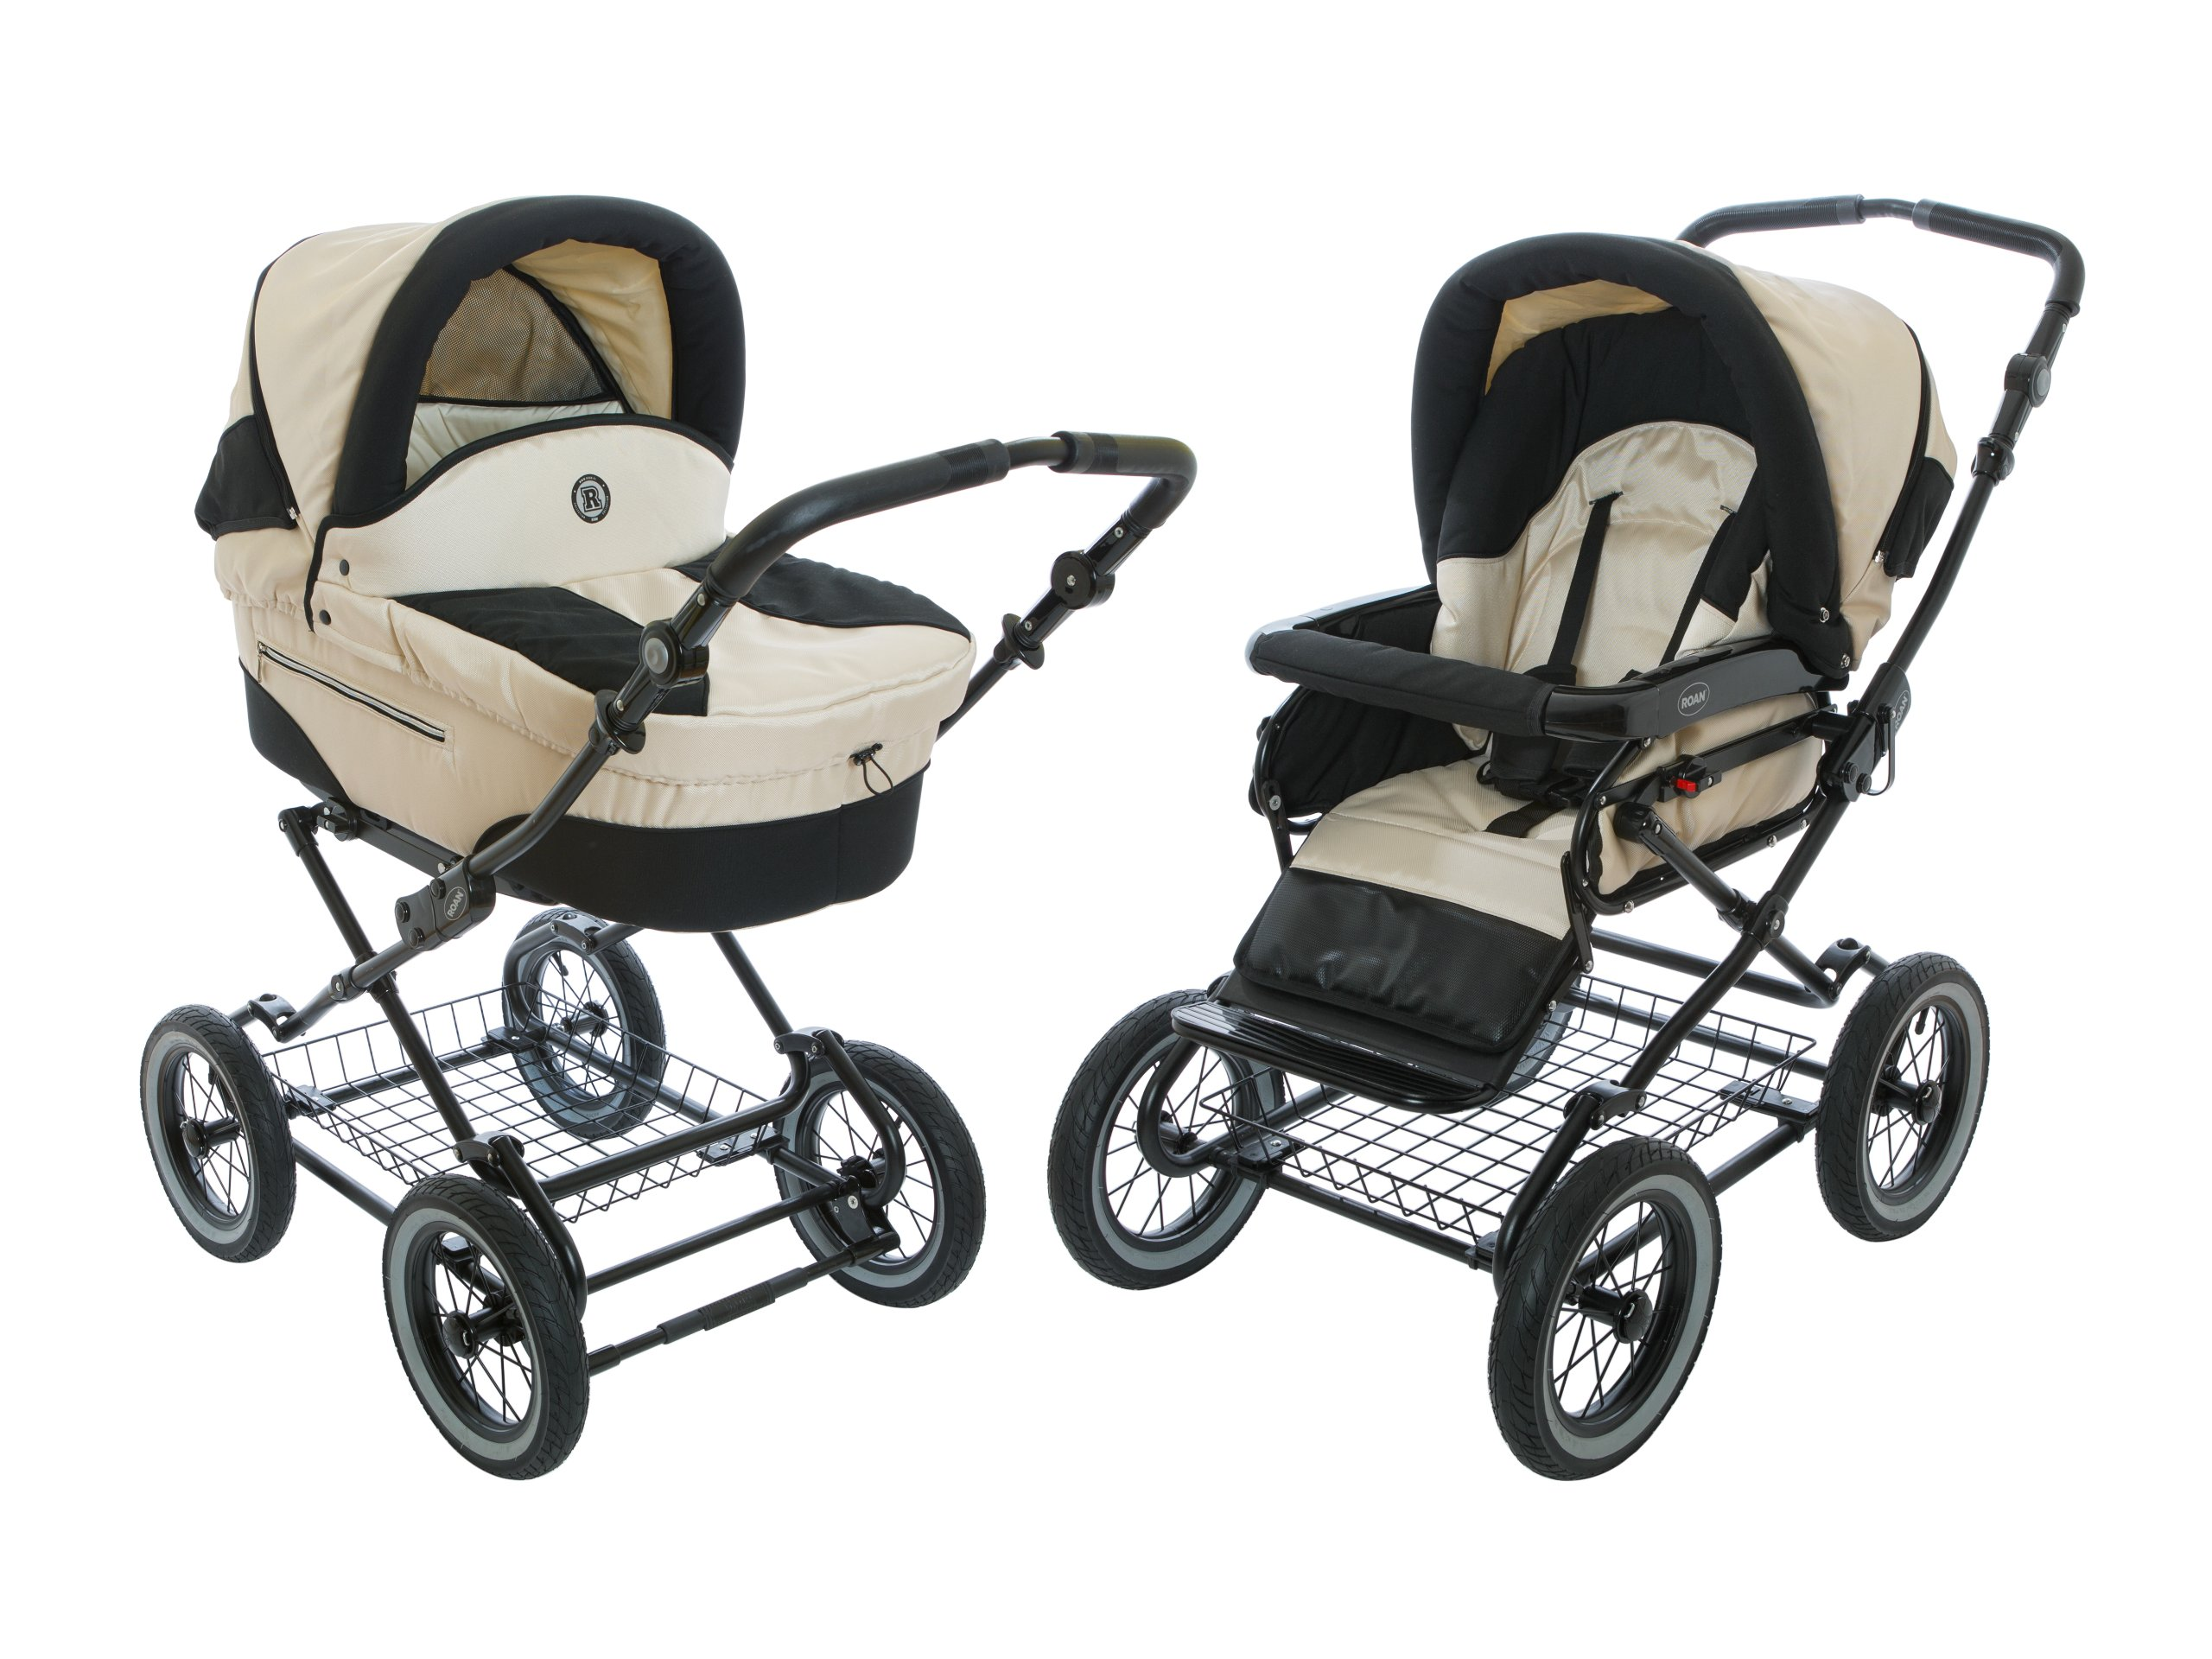 Roan Rocco Classic Pram Stroller 2-in-1 with Bassinet and Seat Unit - Pearl by Roan